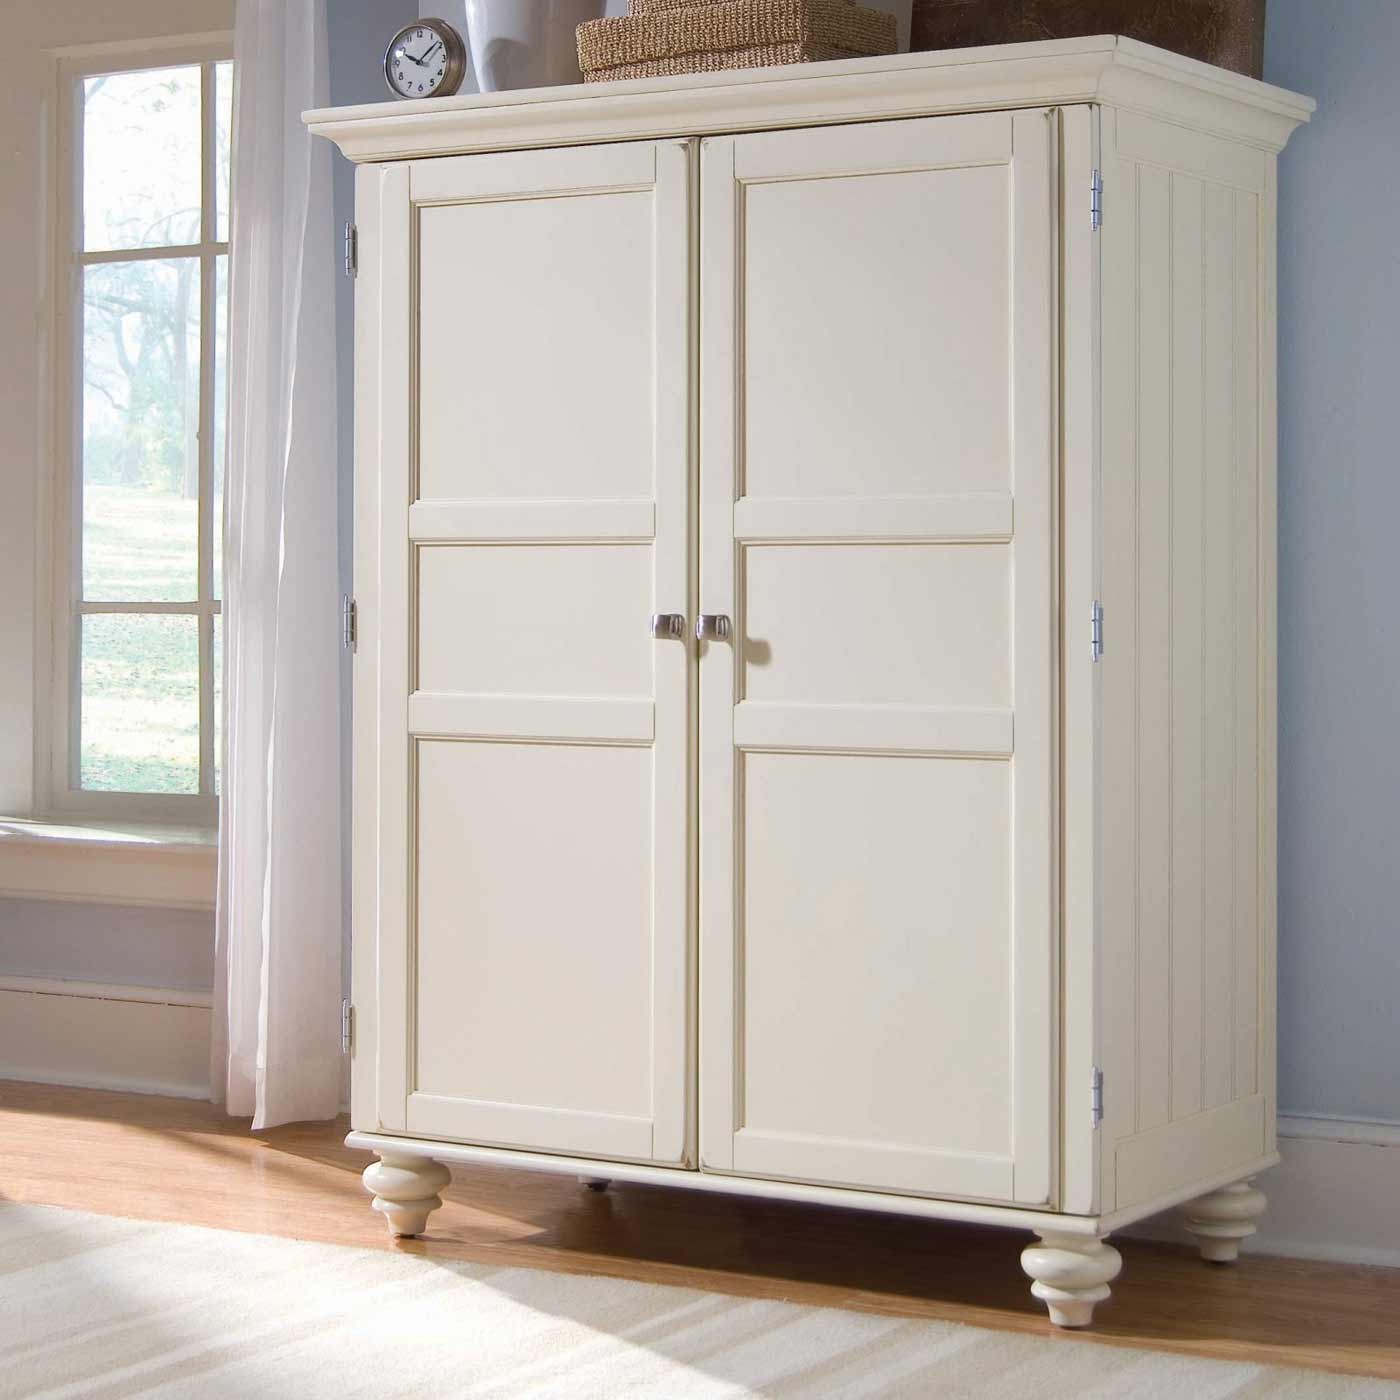 Cheap Wardrobes Welcome New Post Has Been Published On Kalkunta